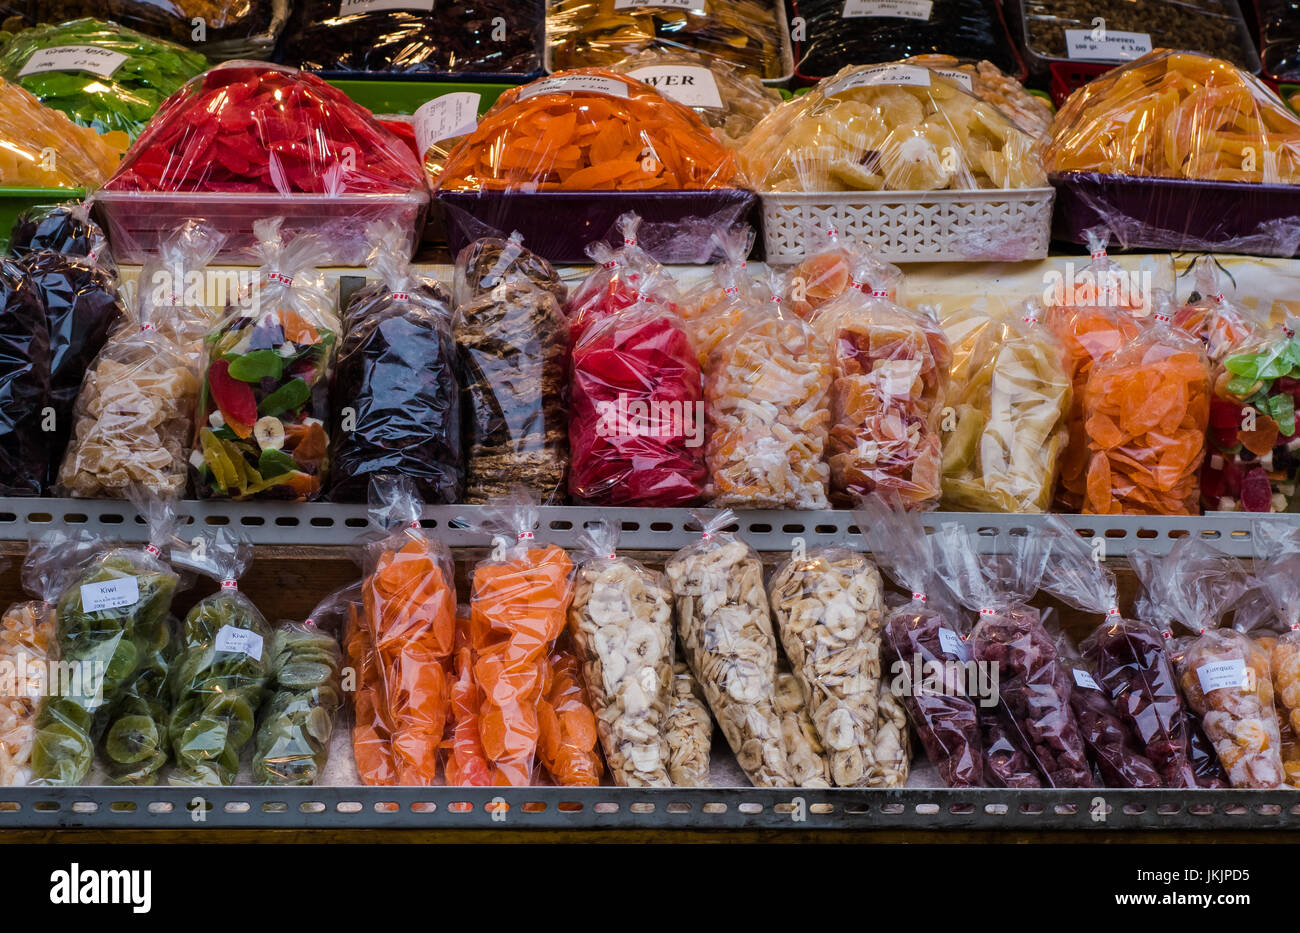 Colourful sweets and candy packaged in individual bags on display for  sale in street market stall Stock Photo